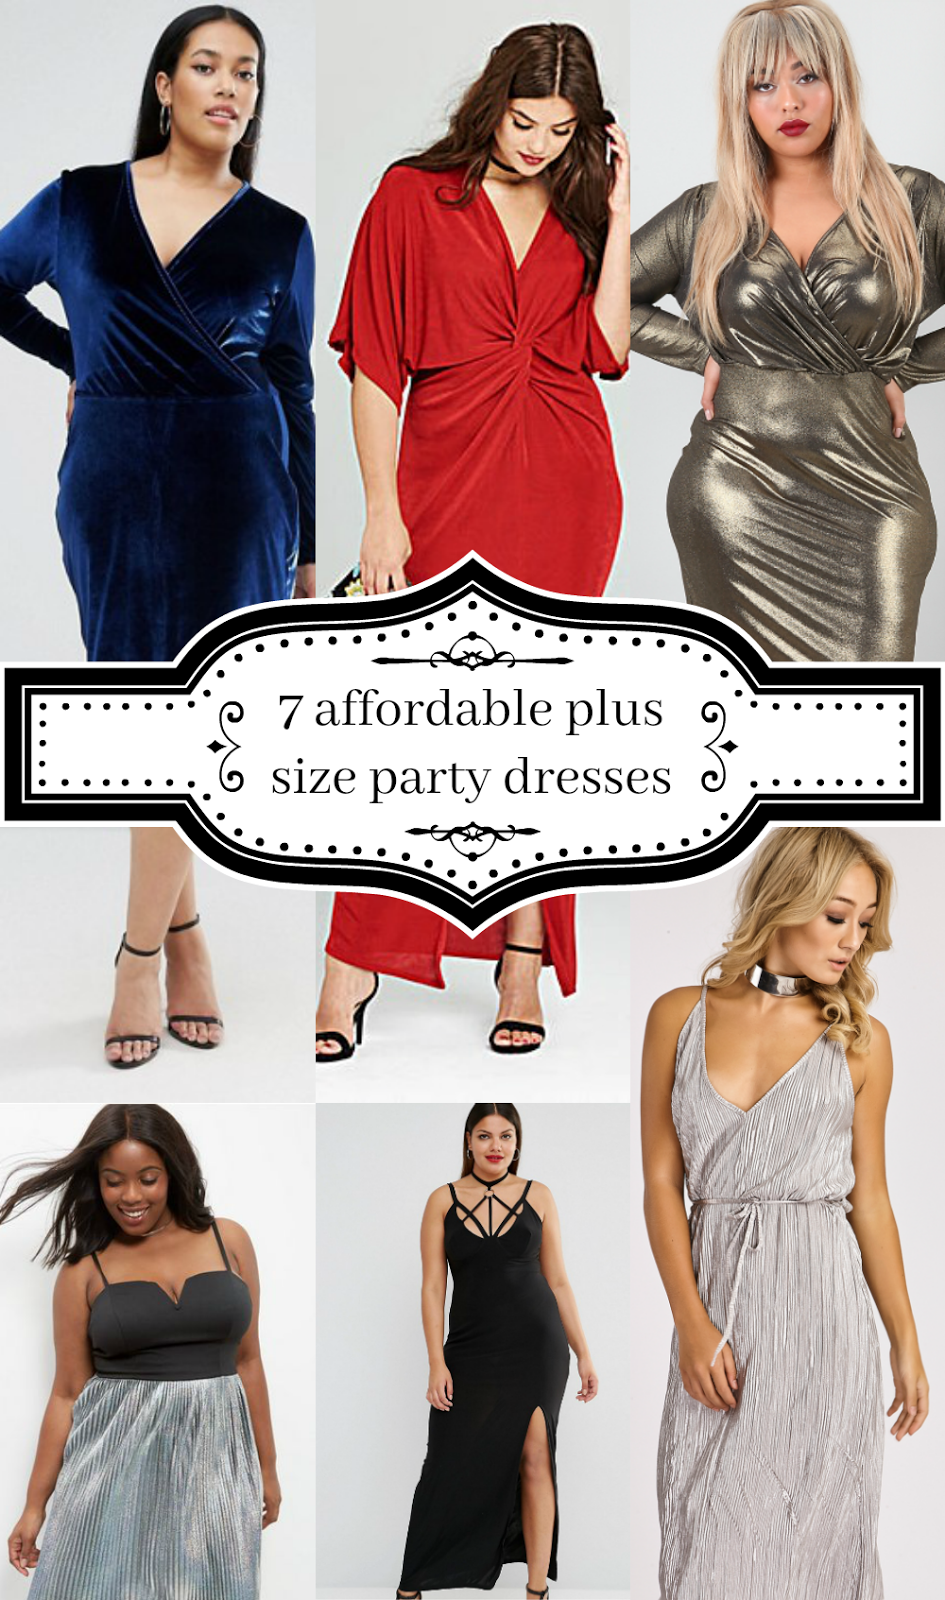 7-affordable-plus-size-party-dresses Christmas glam // www.xloveleahx.co.uk